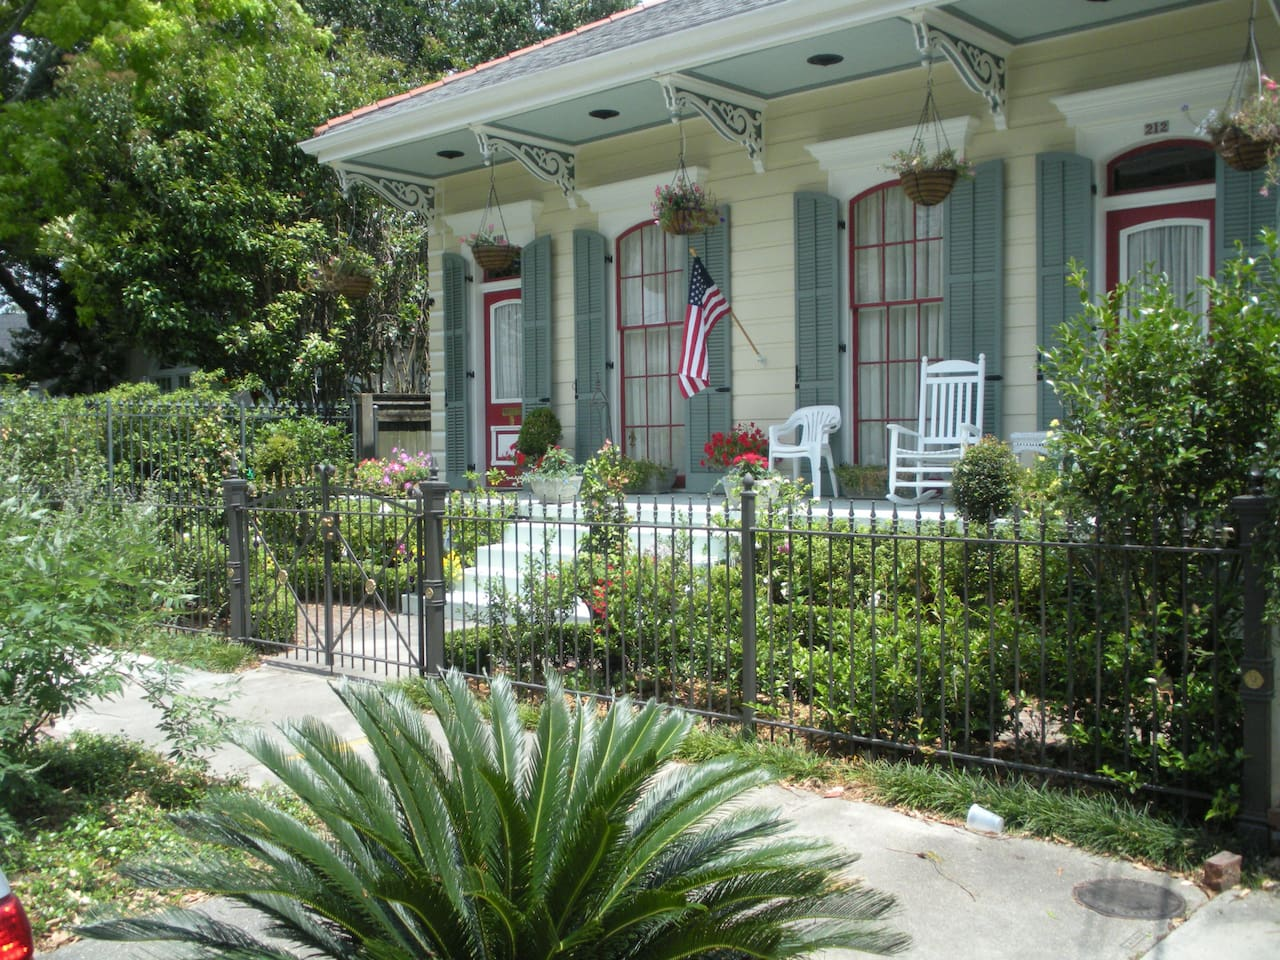 Front Entrance and Gardens of our Stunning double shotgun house.  Come and enjoy it with us!!